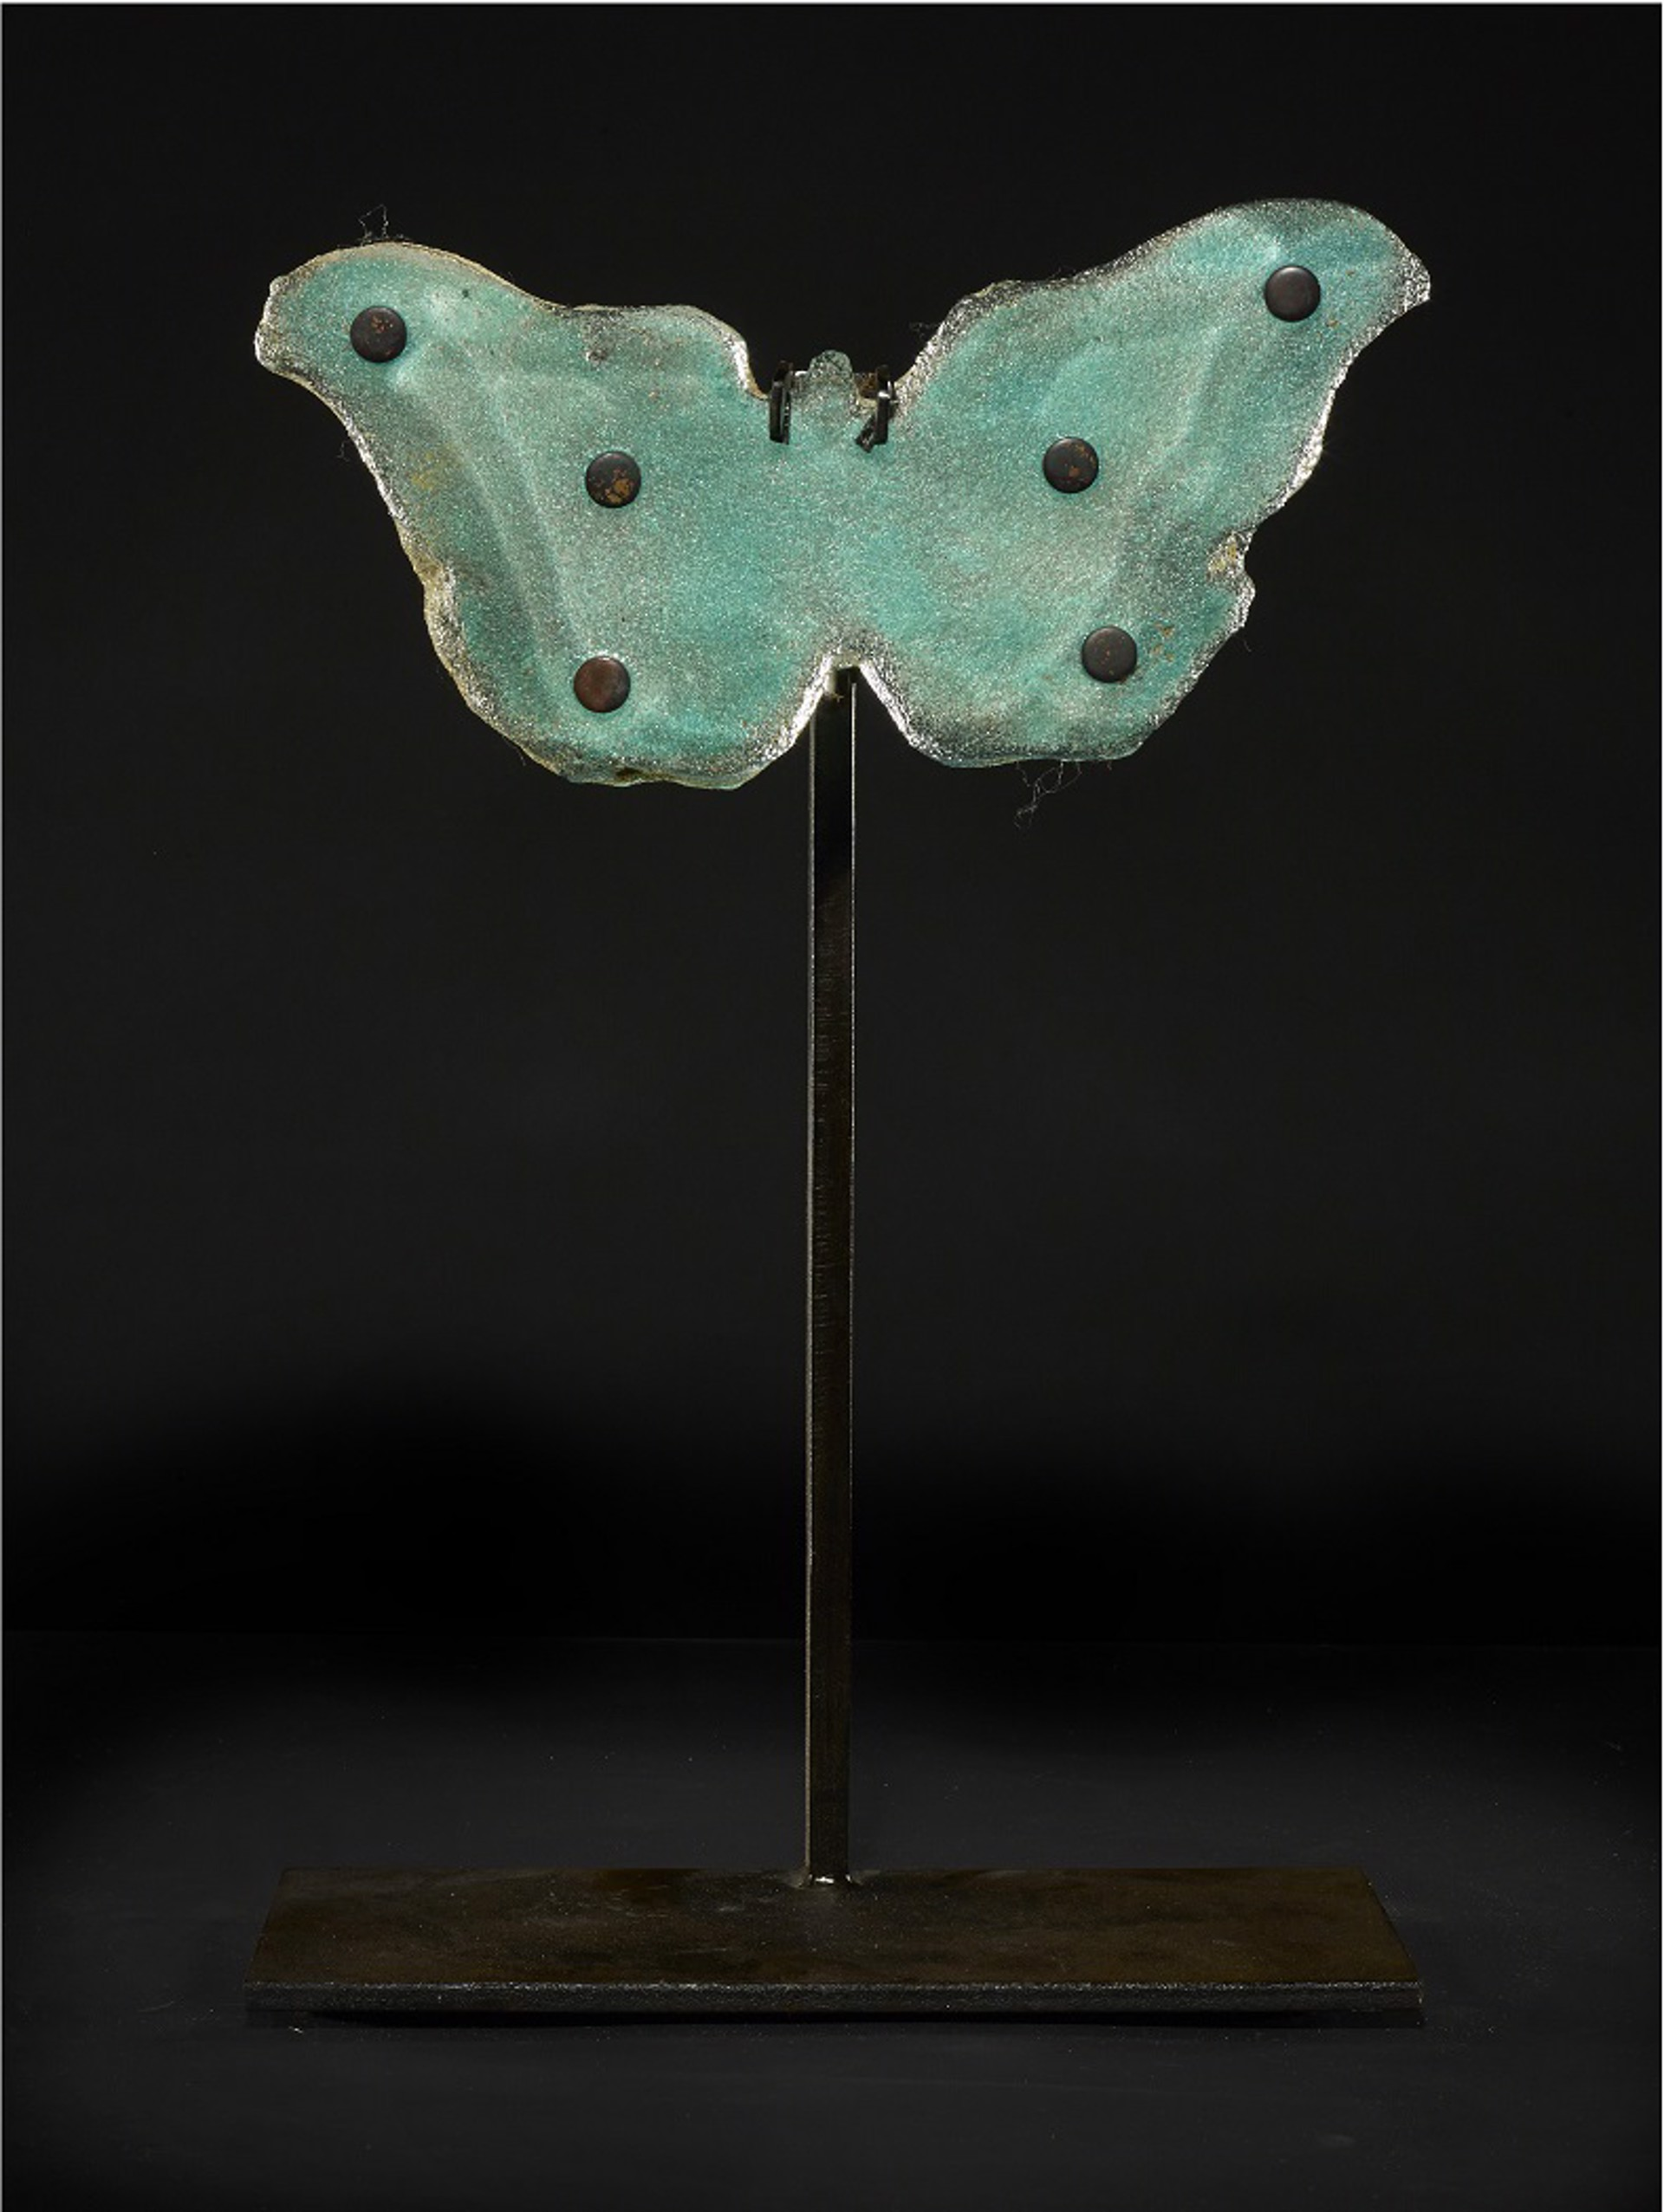 Copper Blue Butterfly with Dots by Marlene Rose (b. 1967)